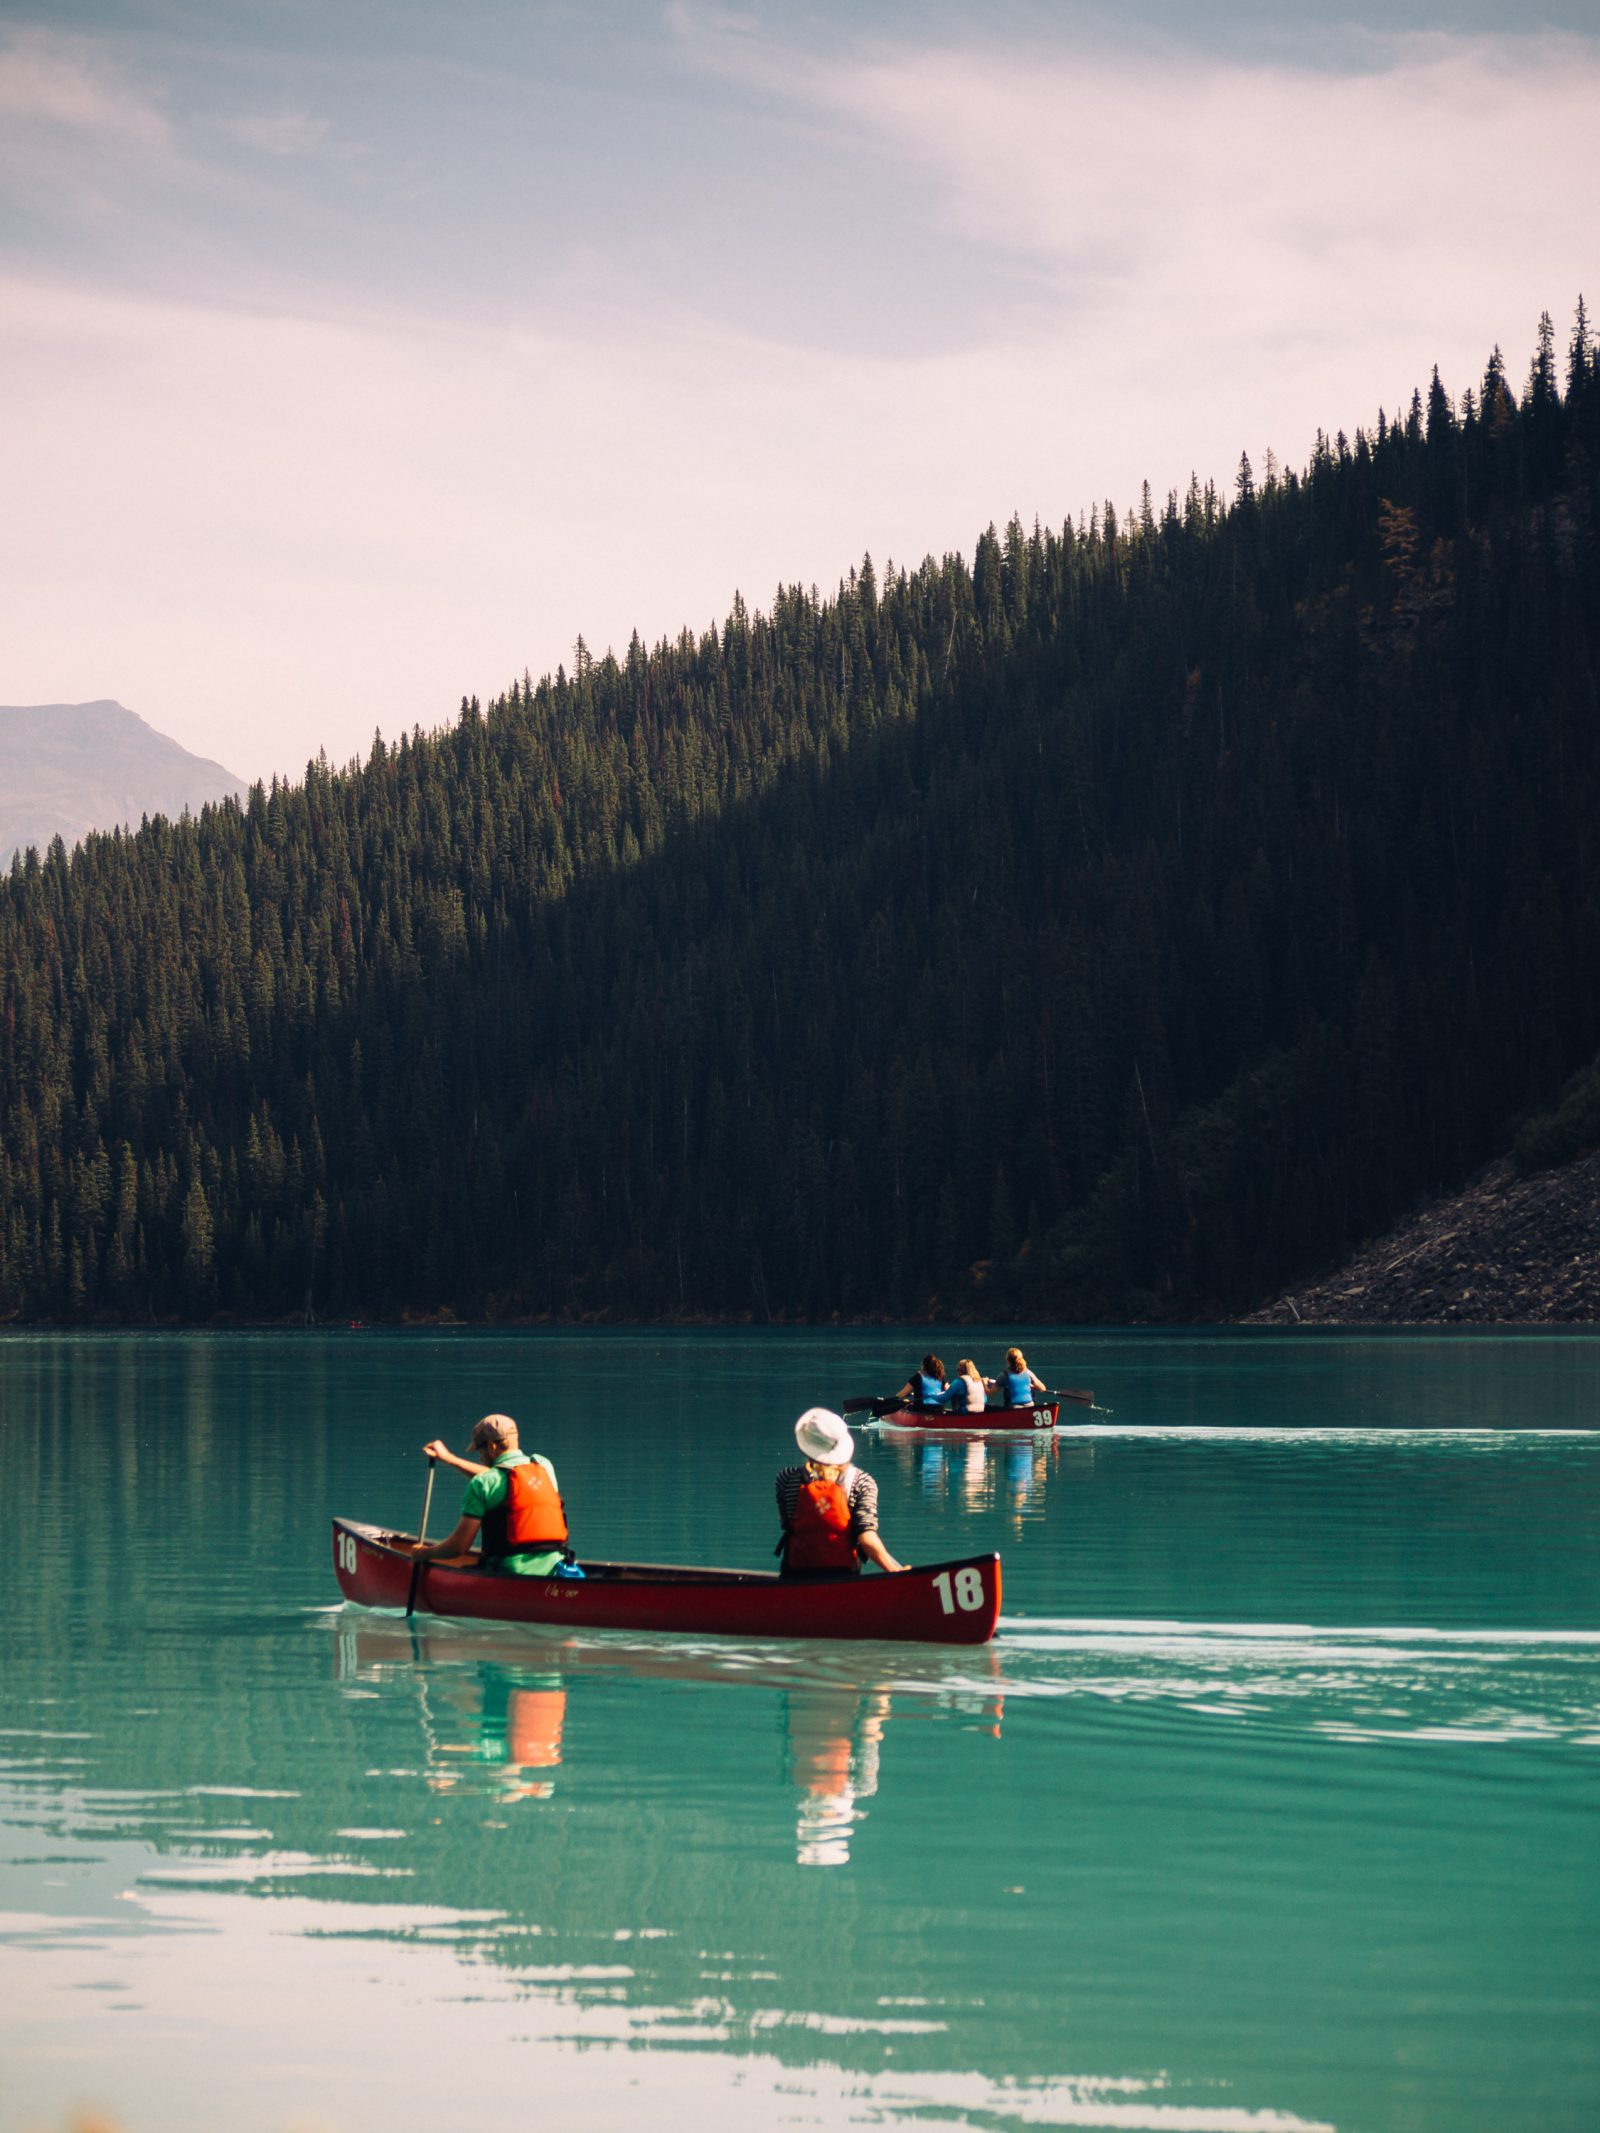 Canoeing into the Wild